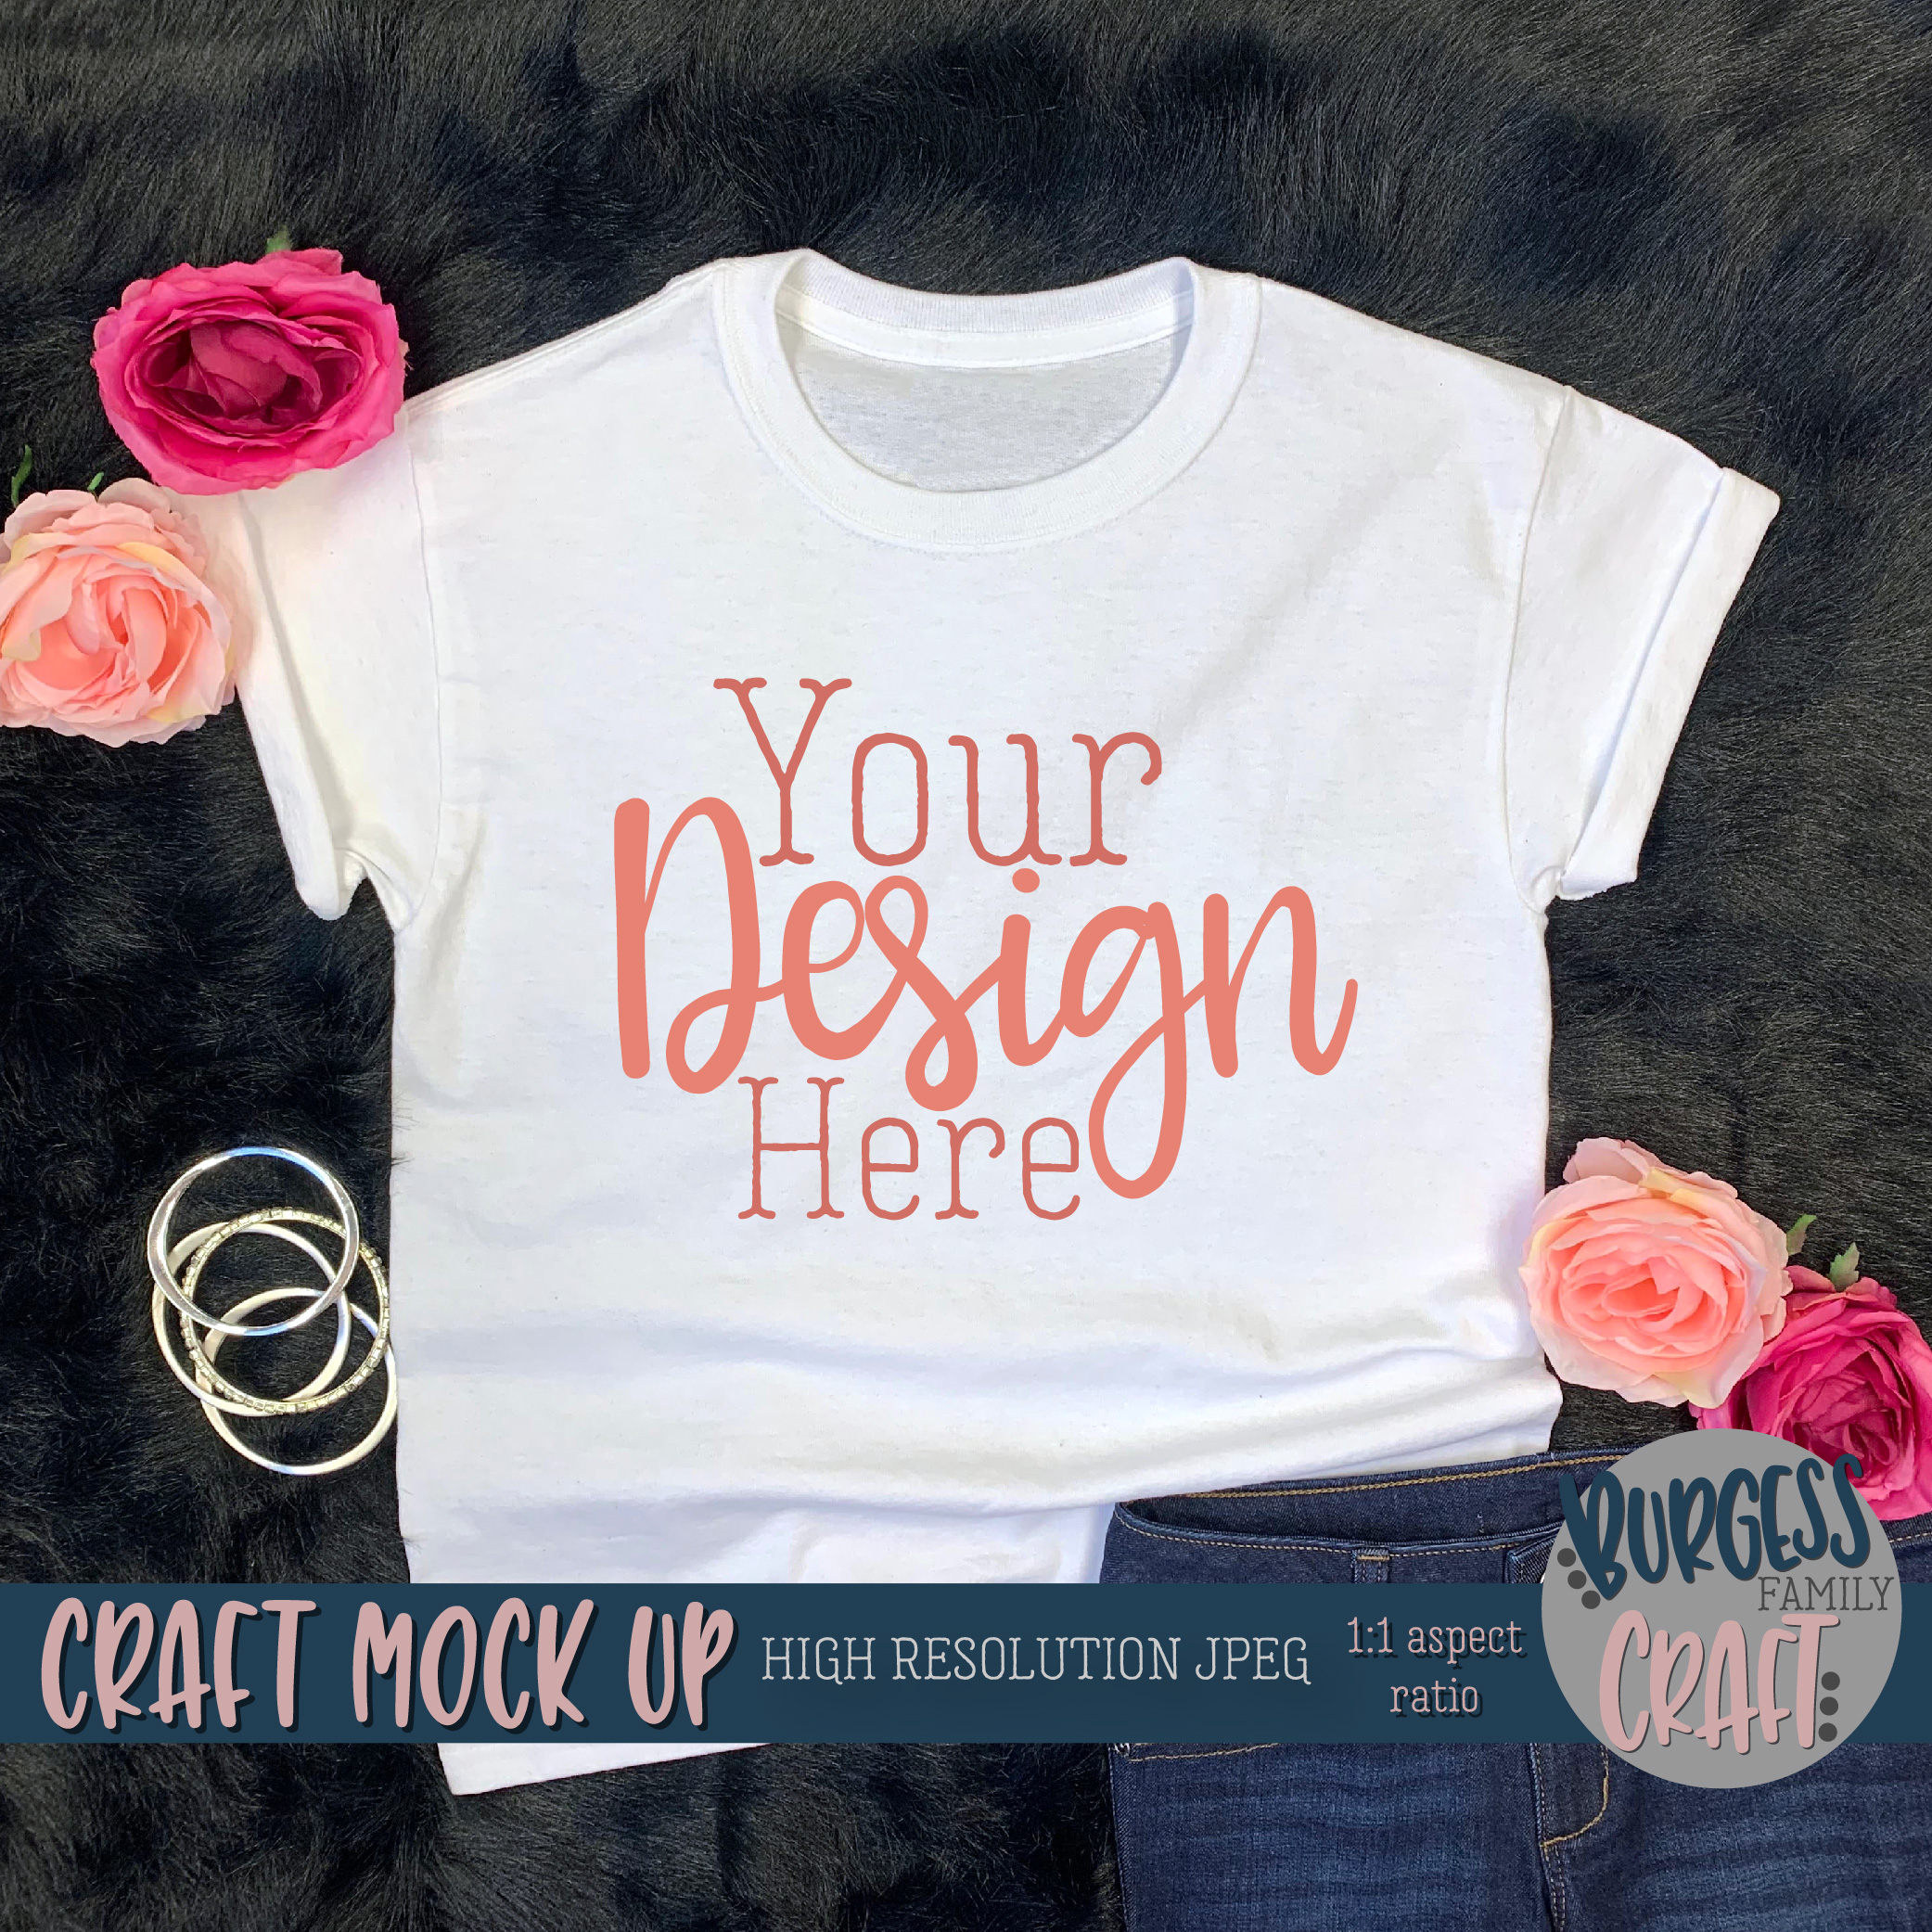 Youth Shirt Pretty w/Jeans Craft mock up | High Res JPEG example image 2